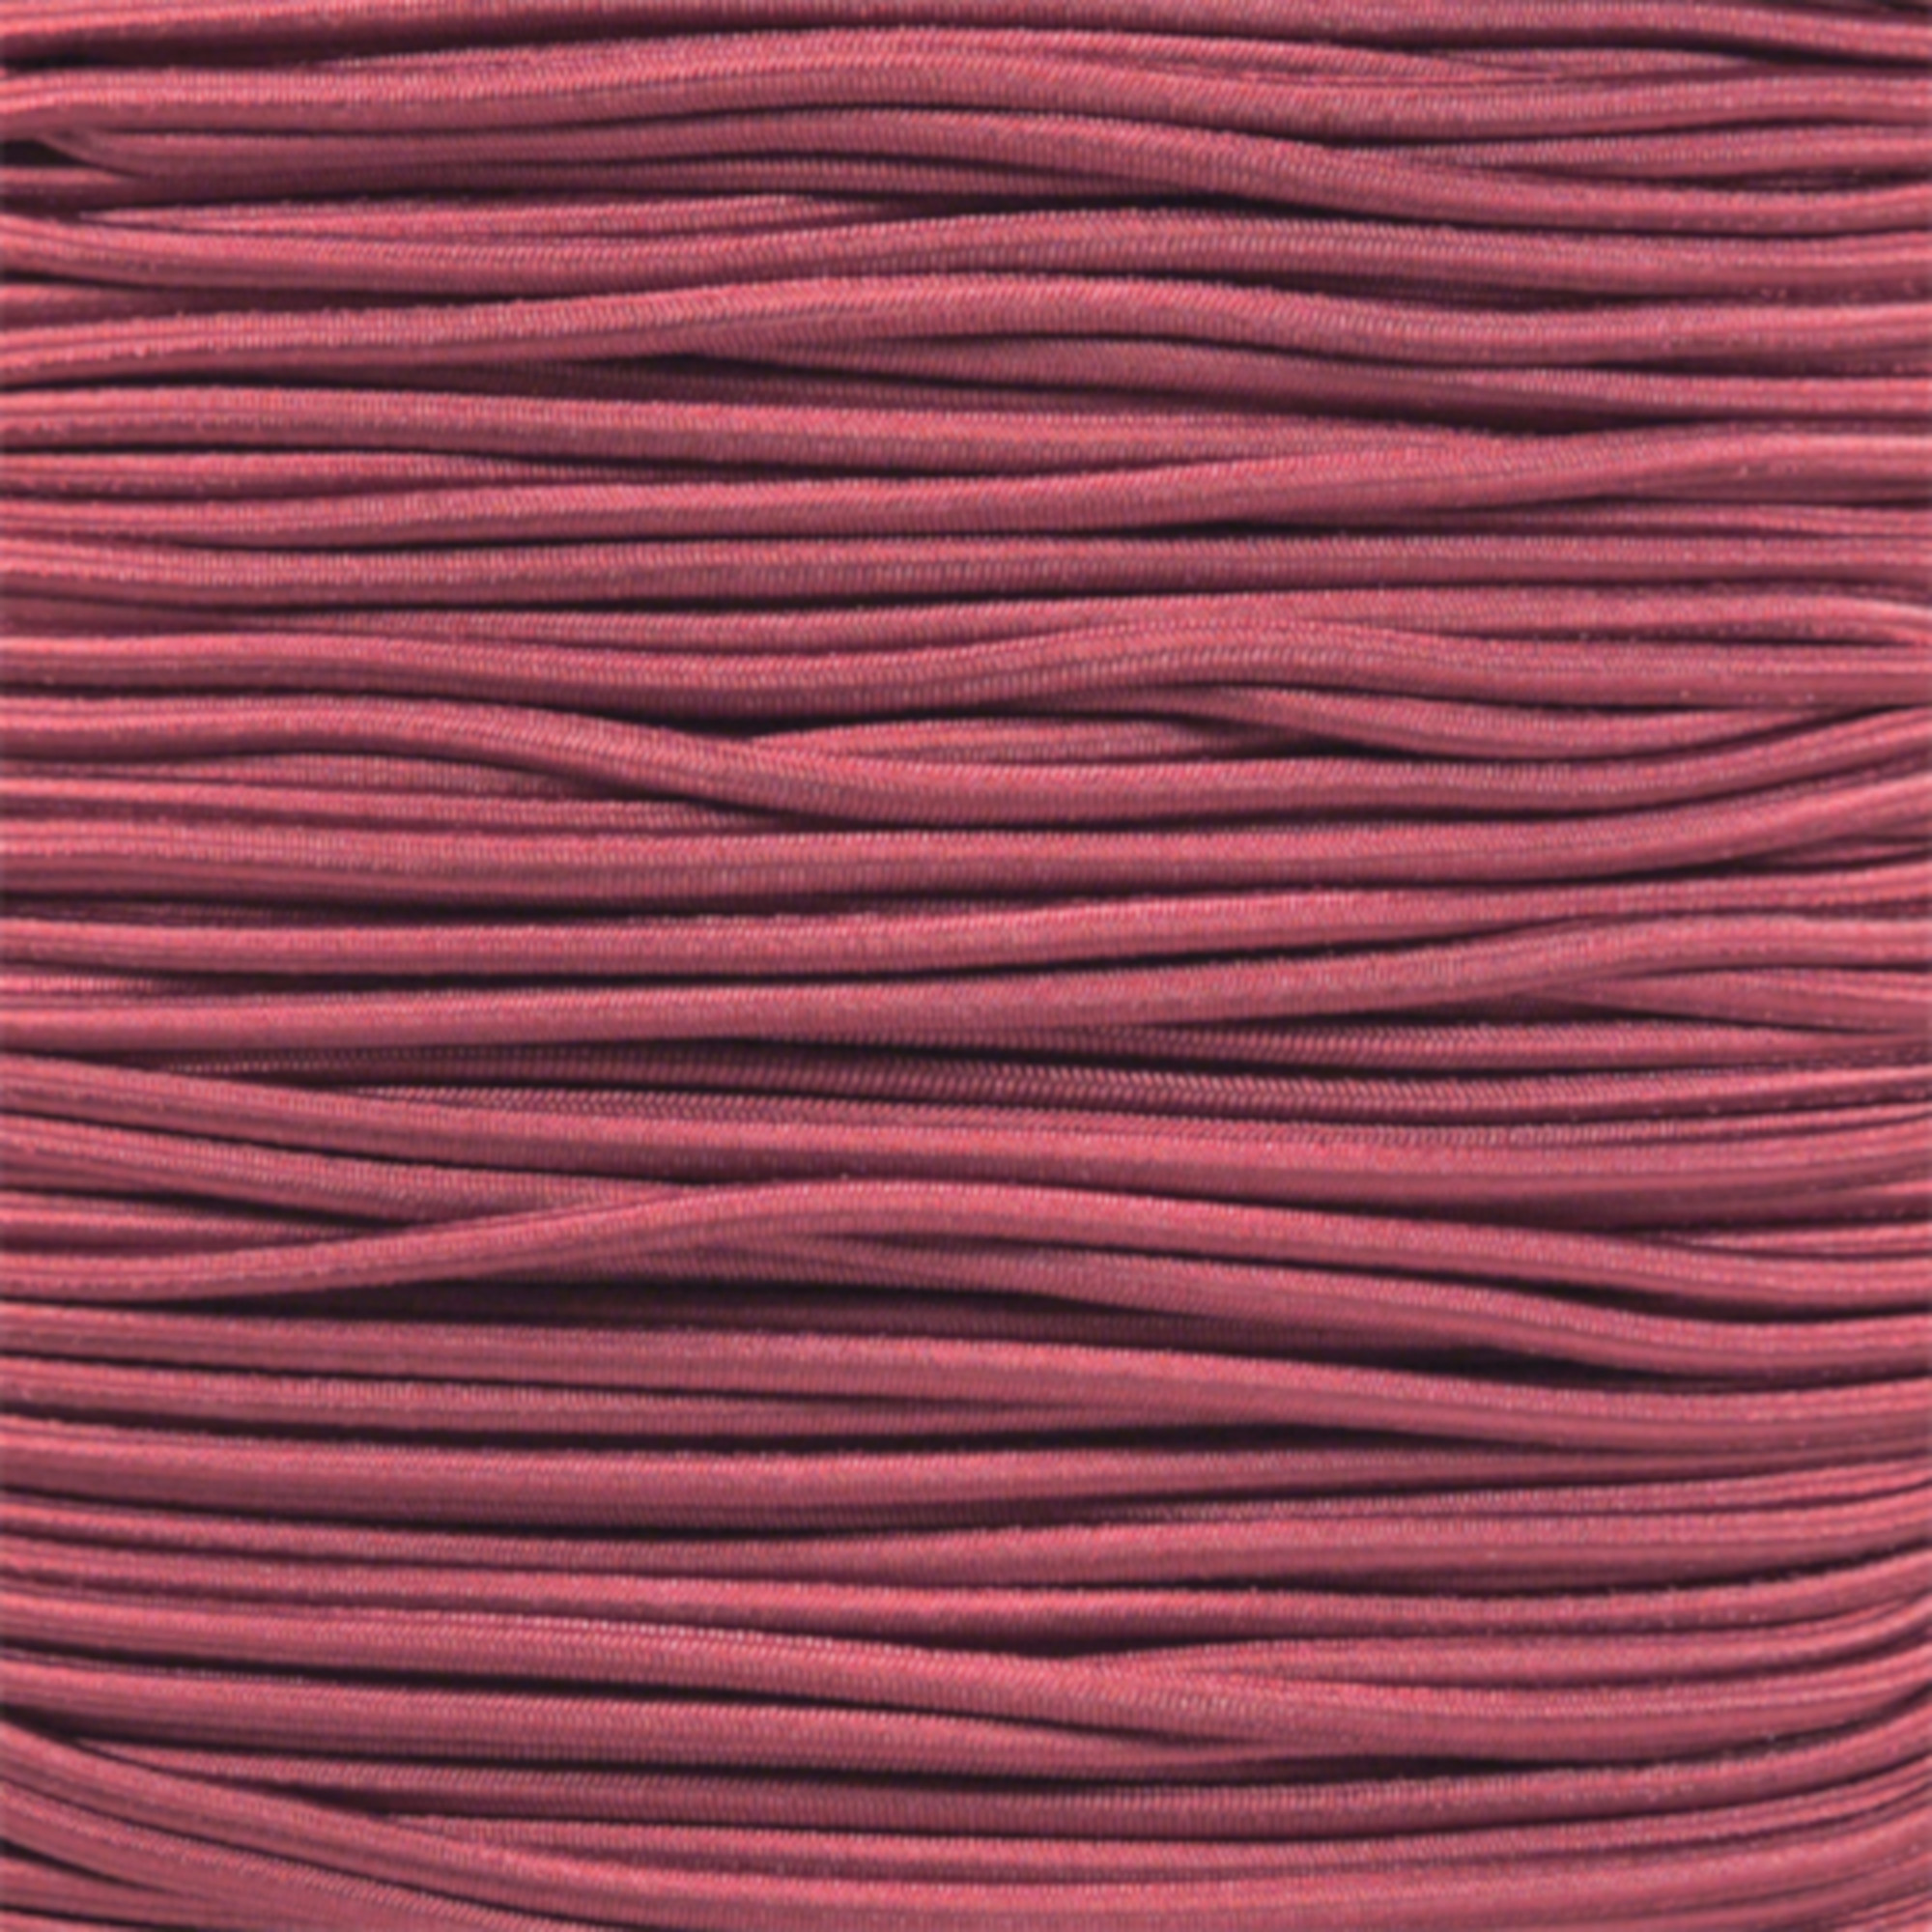 100 Feet of Marine Grade Elastic Shock Bungee Cord with Multiple Colors to Choose From